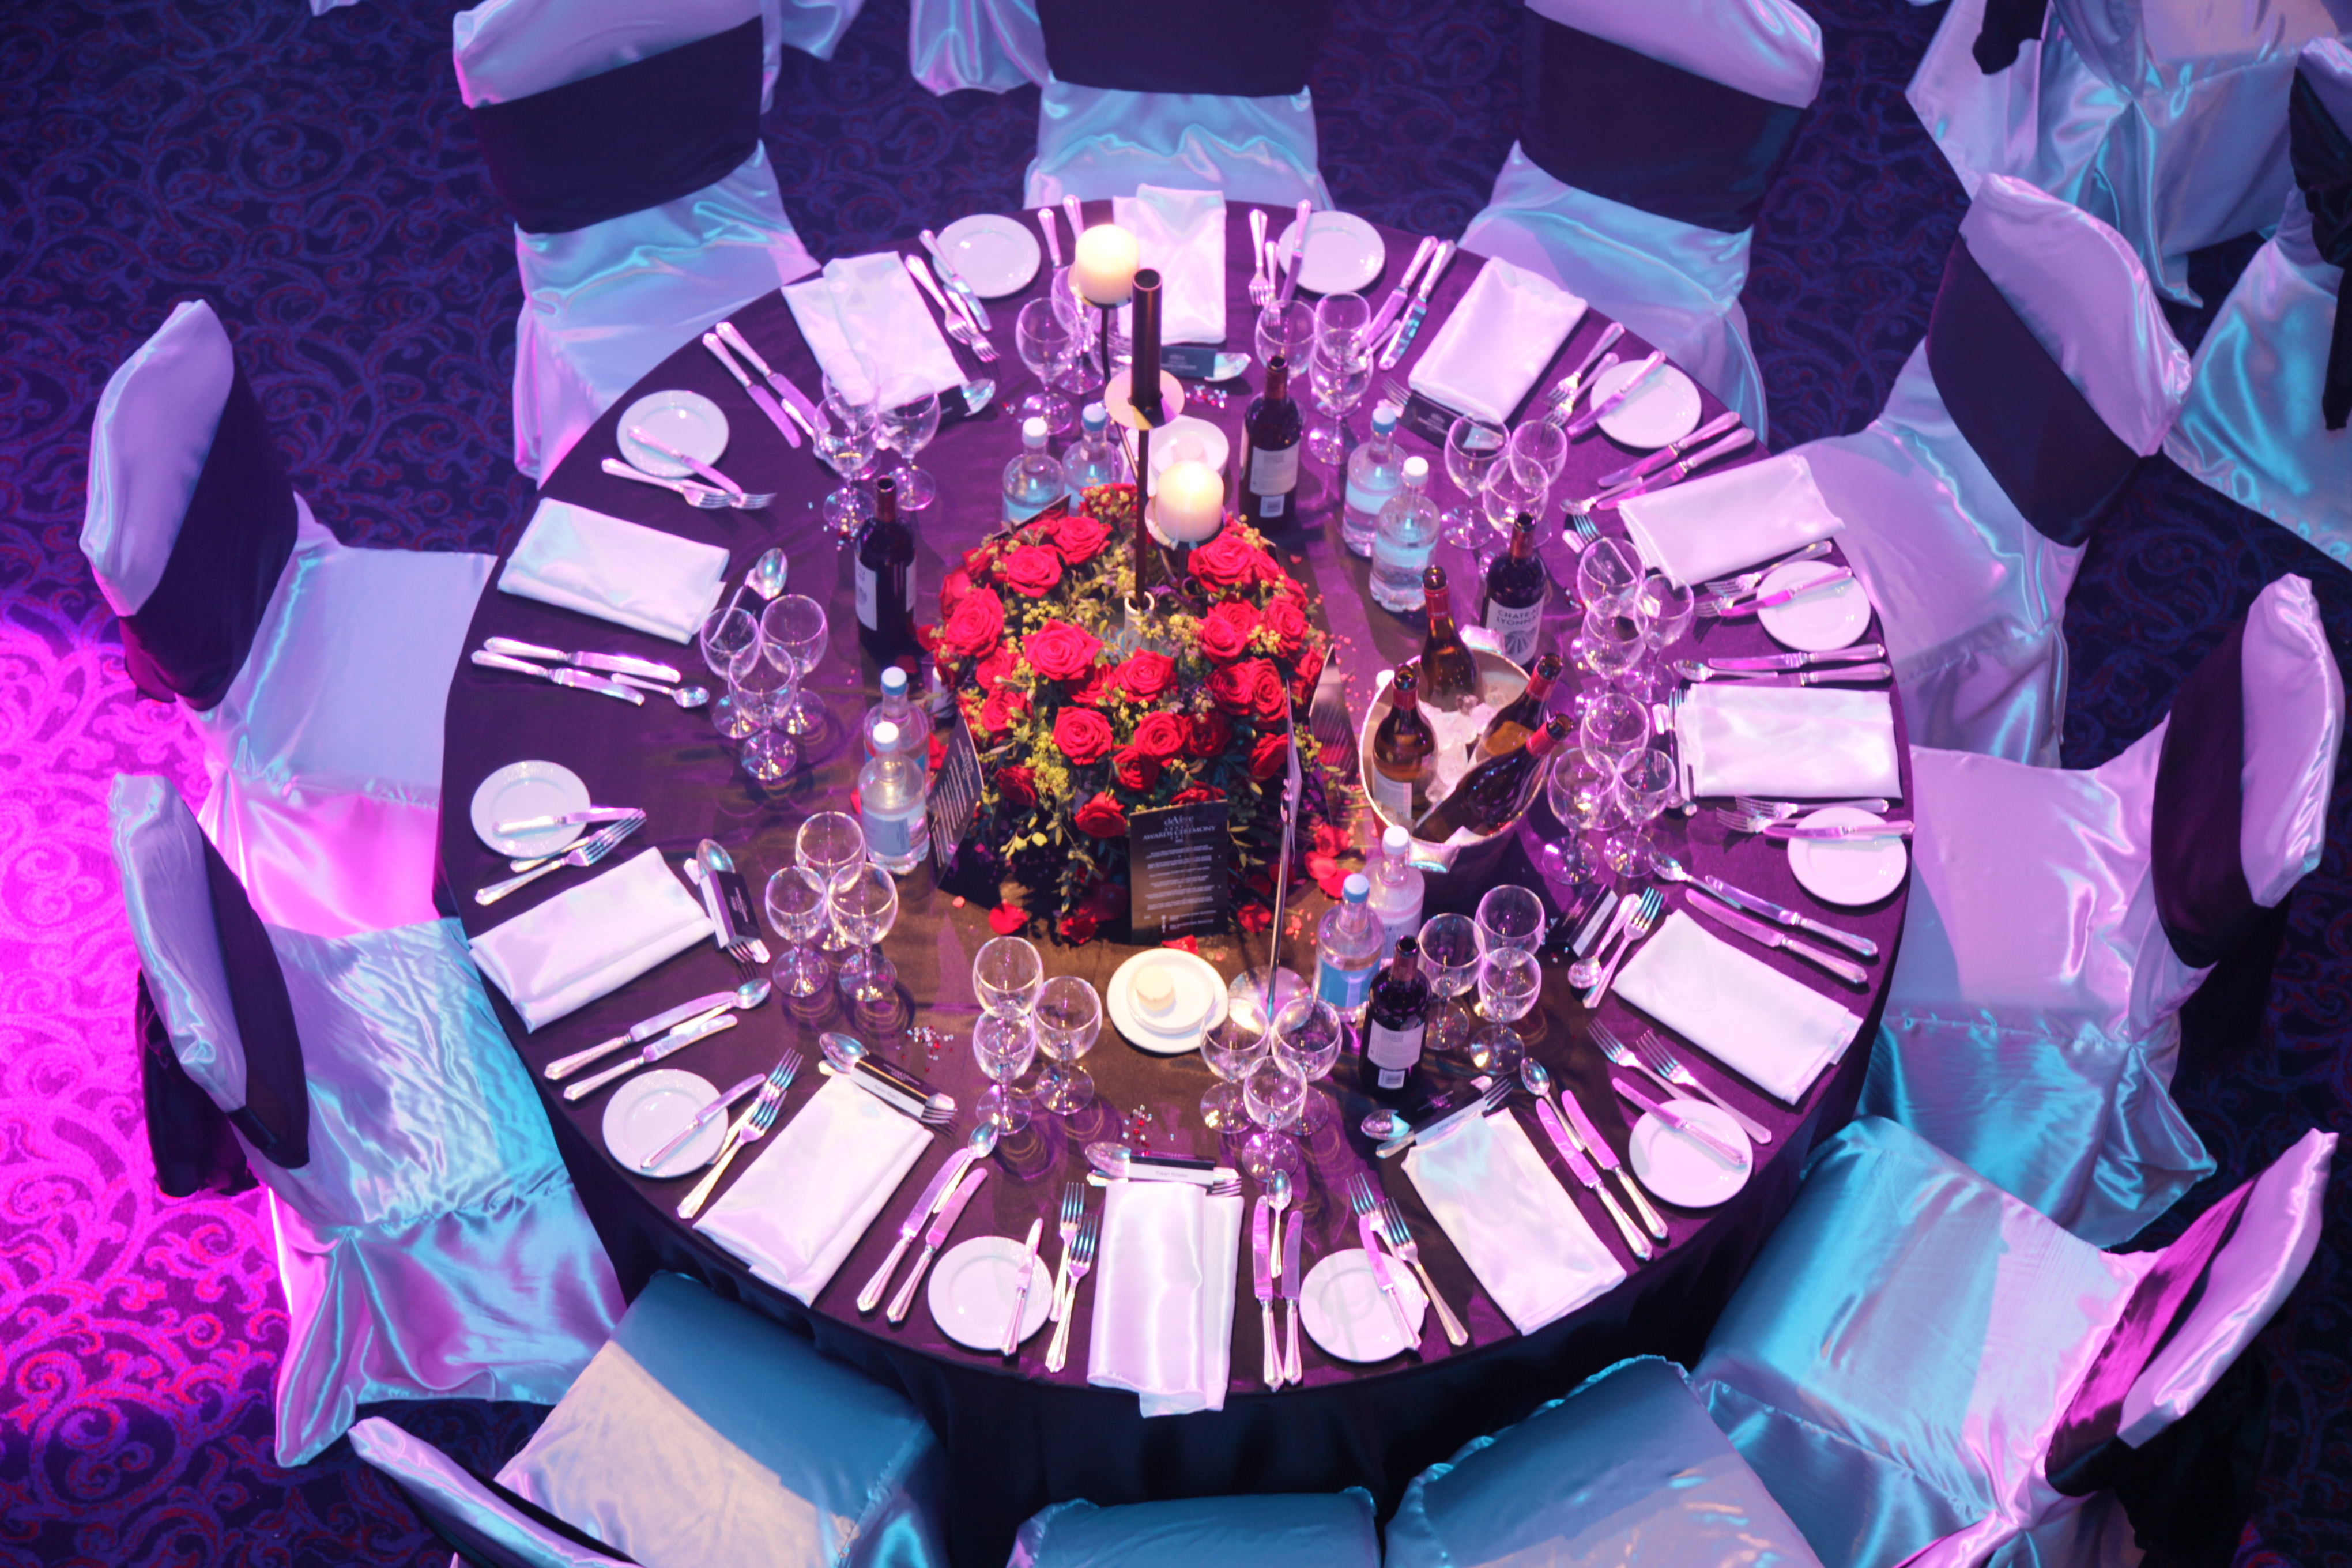 Gallery devere awards ceremony linen hire chair cover for Award ceremony decoration ideas